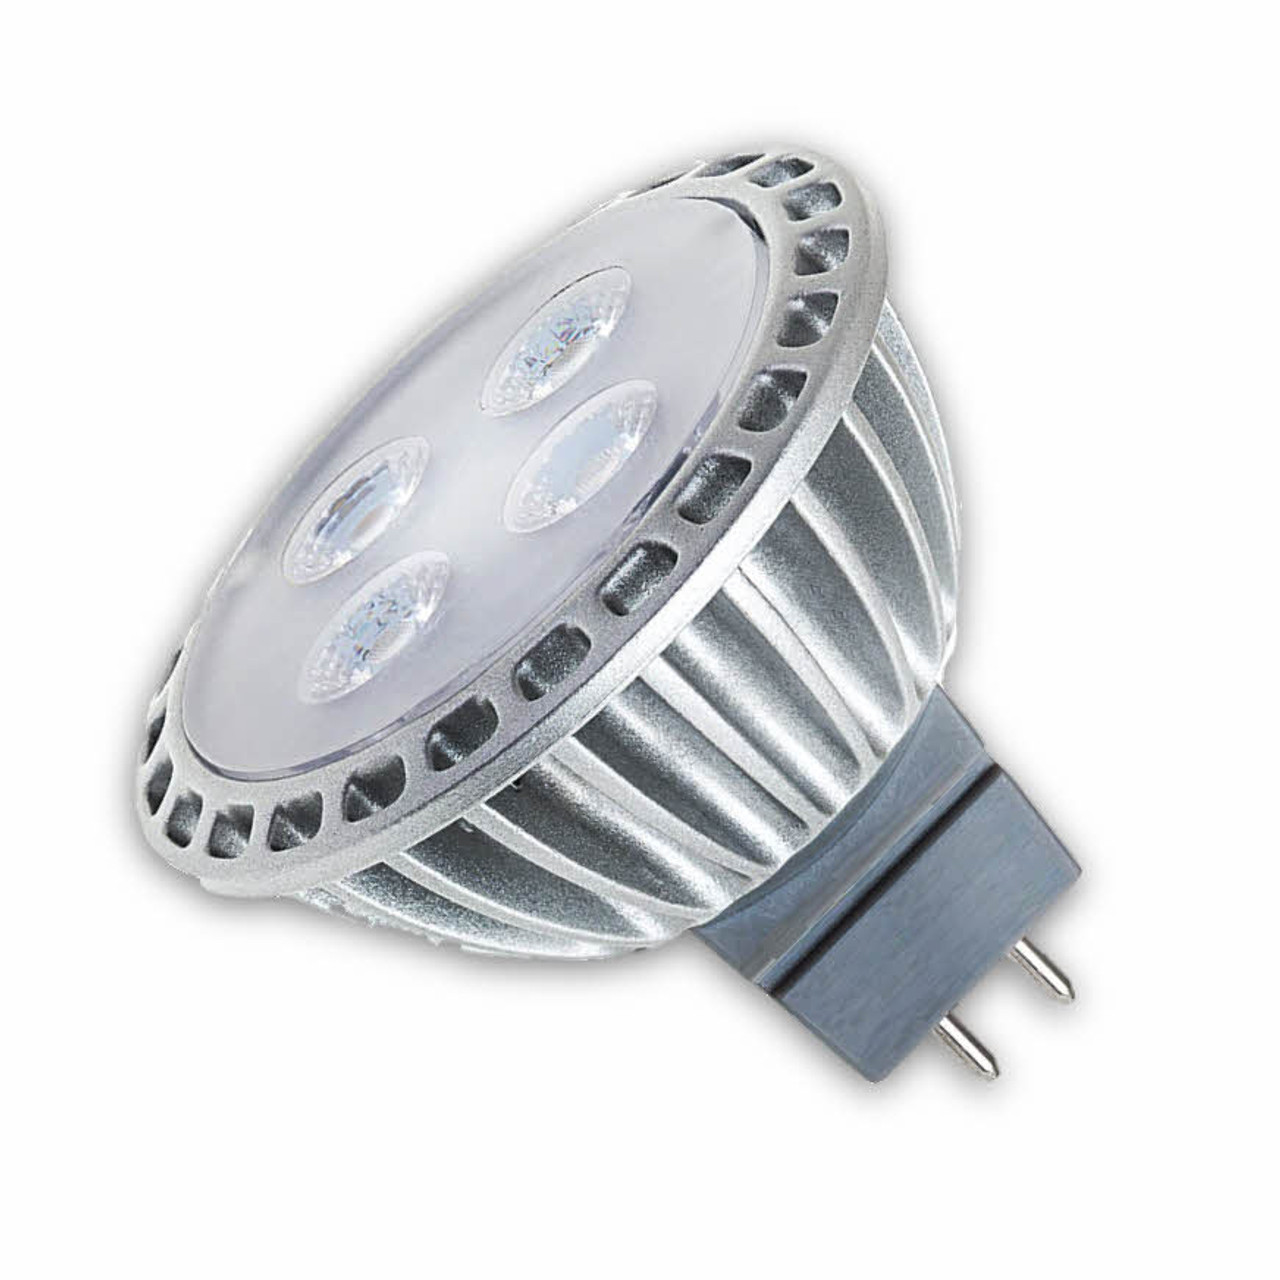 LED Replacement bulb for Hella Deck Combo Light 998505001